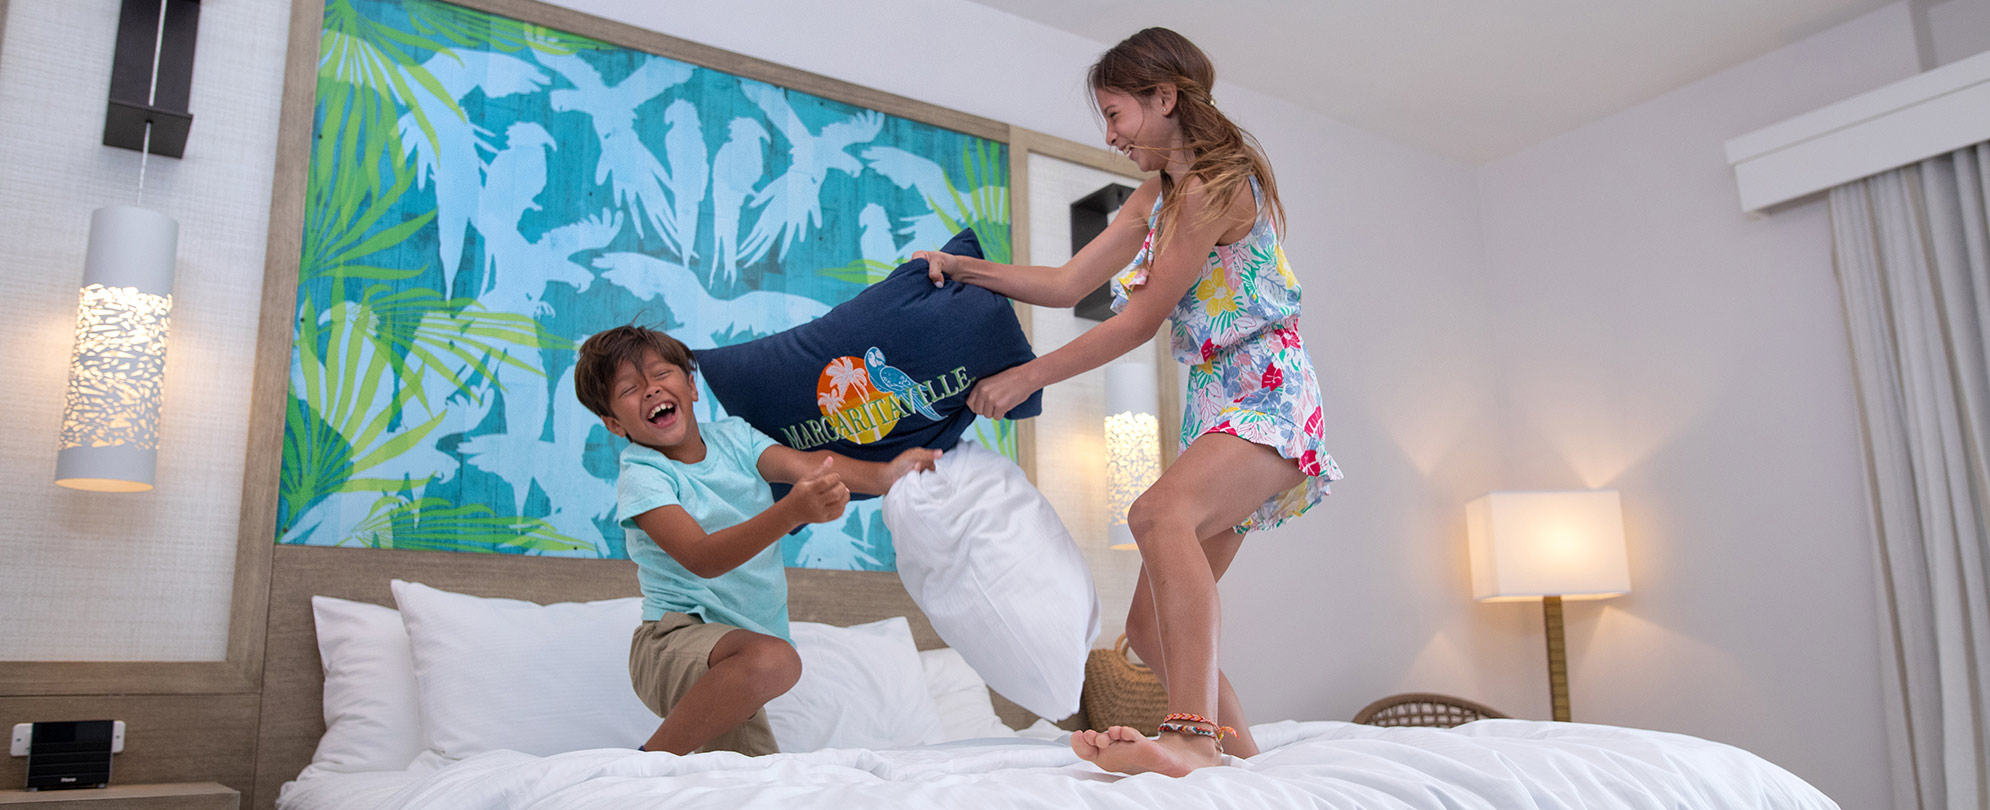 Young girl and boy laughing while having a pillow fight on a bed in a Margaritaville Vacation Club resort suite.